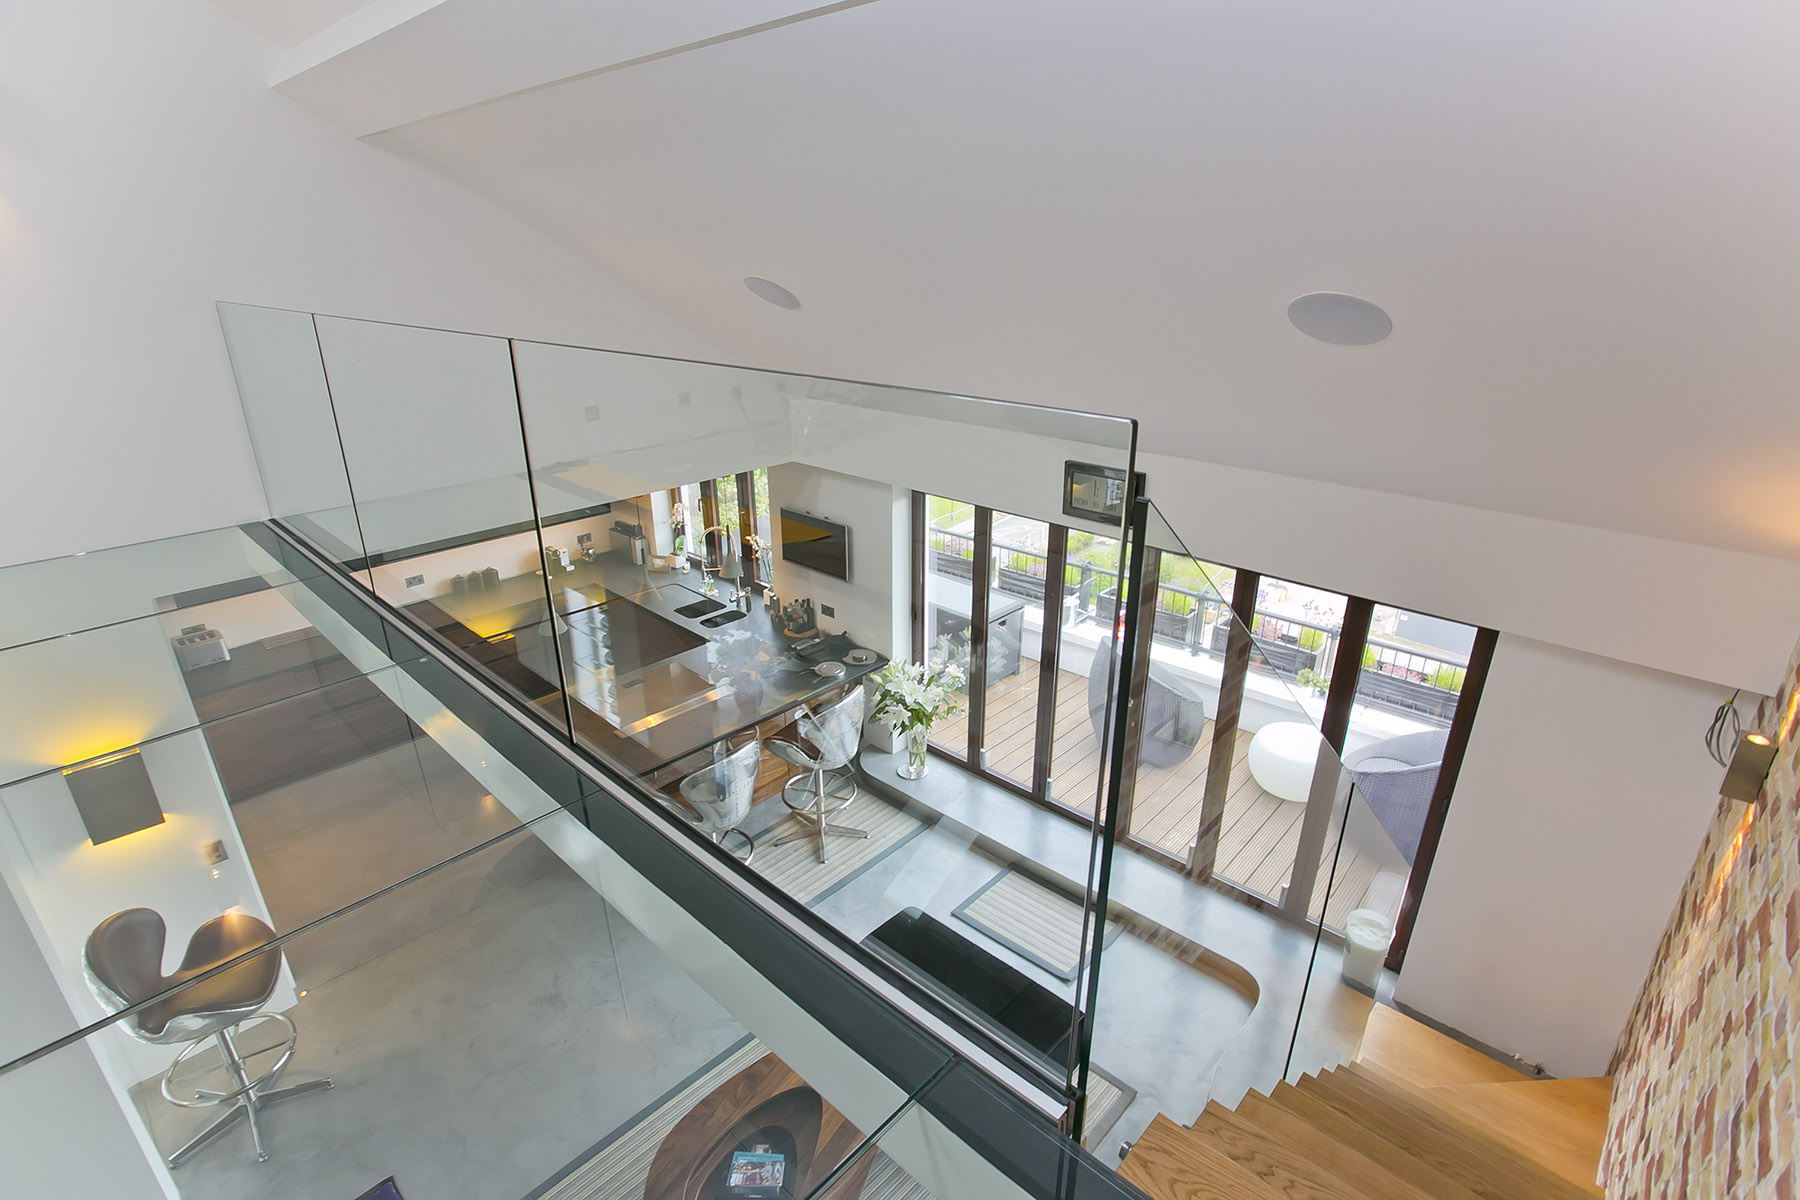 Mezzanine floor - How to plan your internal space